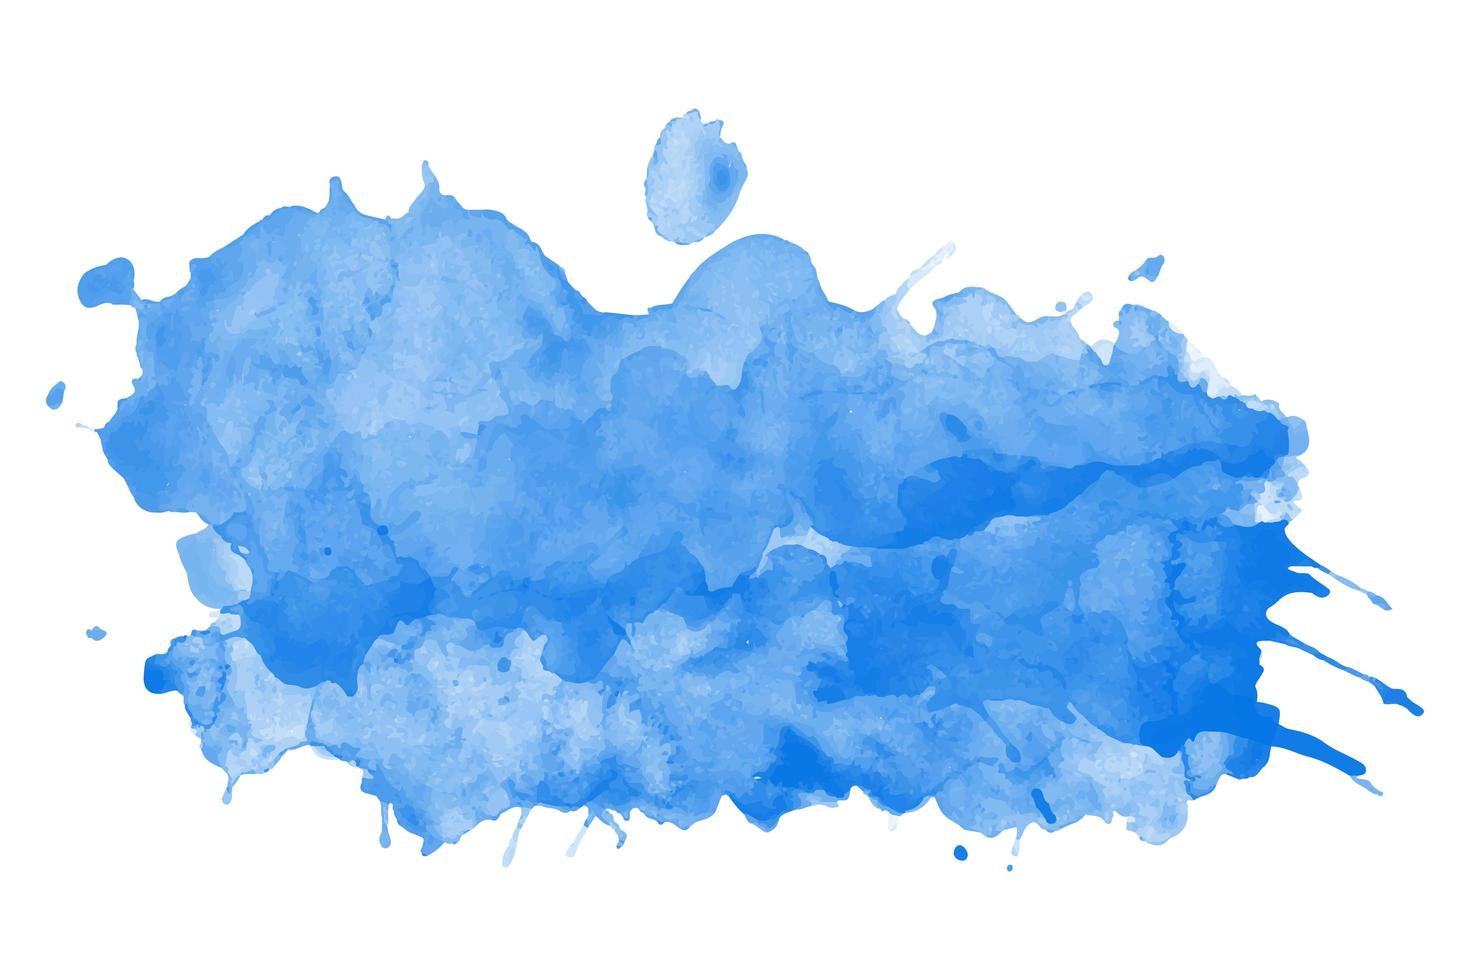 blauwe aquarel splash vector sjabloon